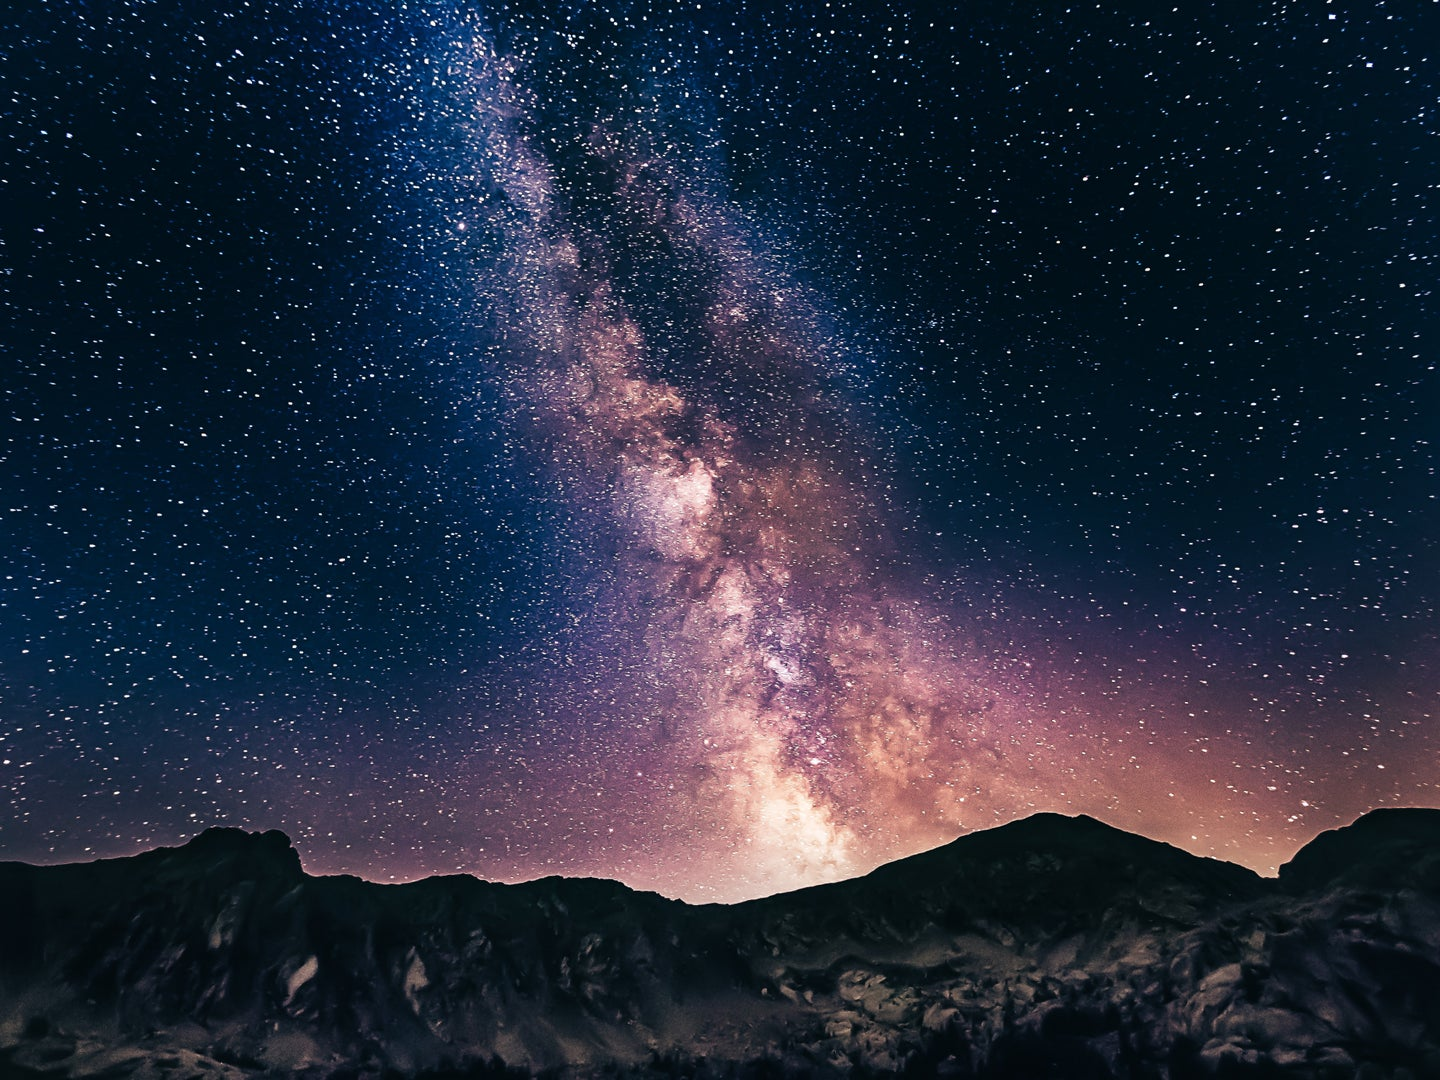 The Milky Way at night over mountains.